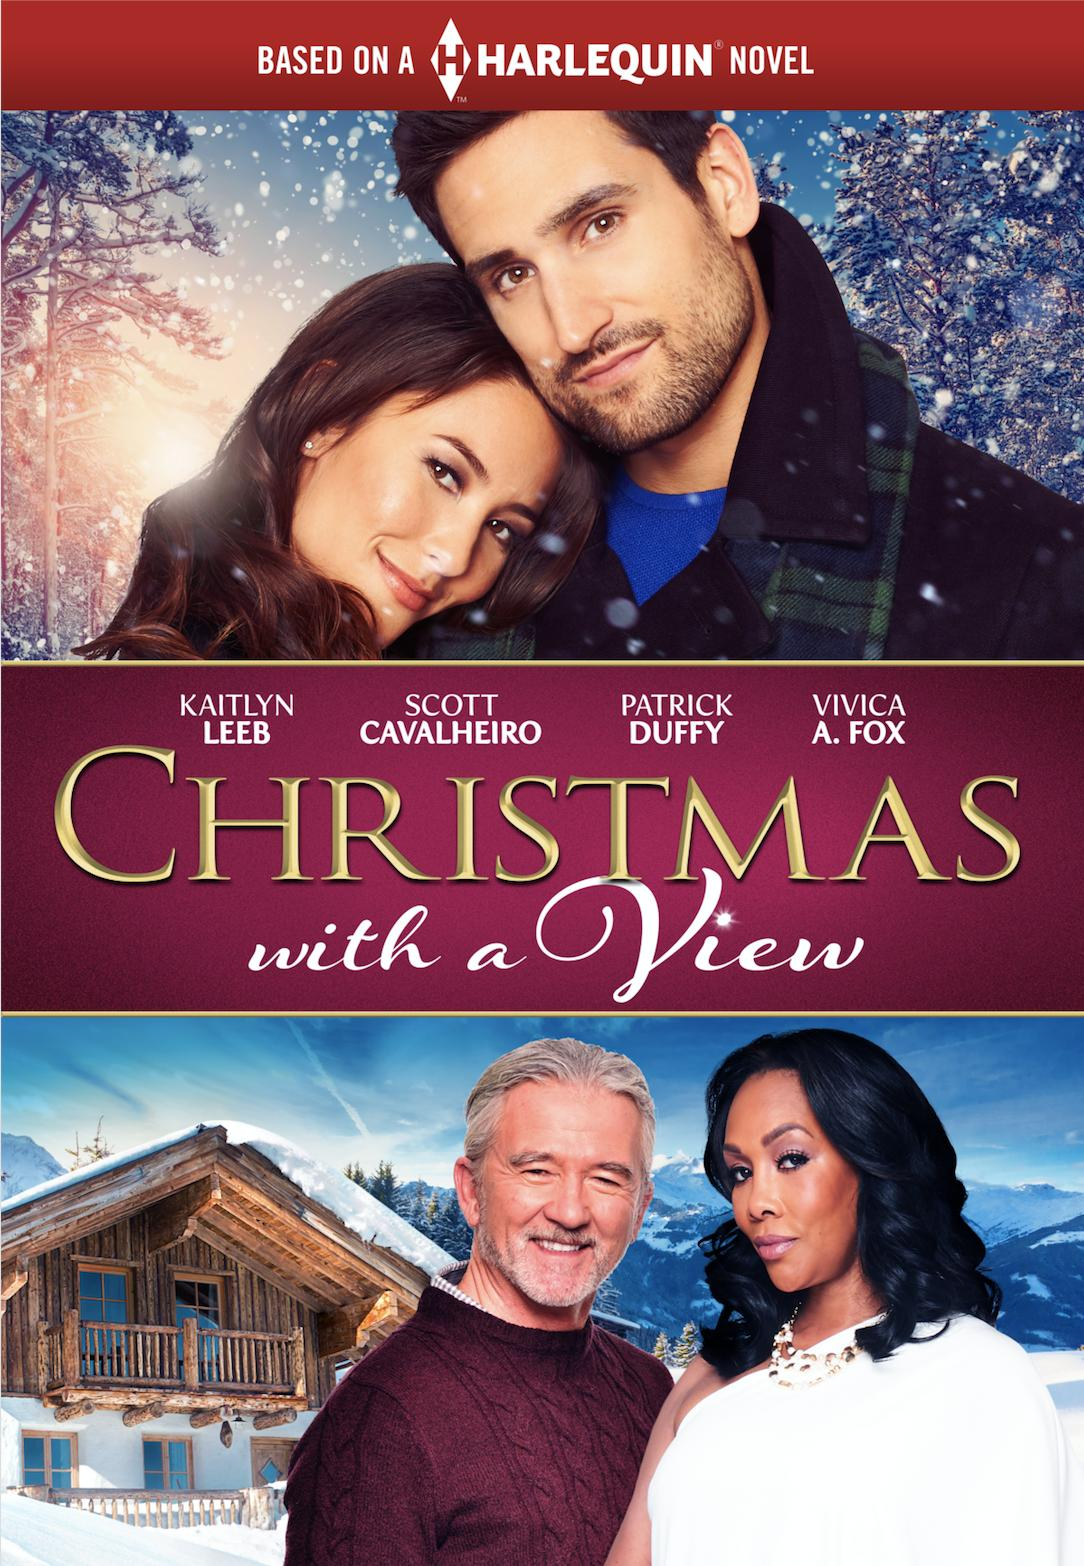 The Christmas Chronicles 2018 Dvd Cover.Netflix Christmas Movies To Stream For The Holiday 2018